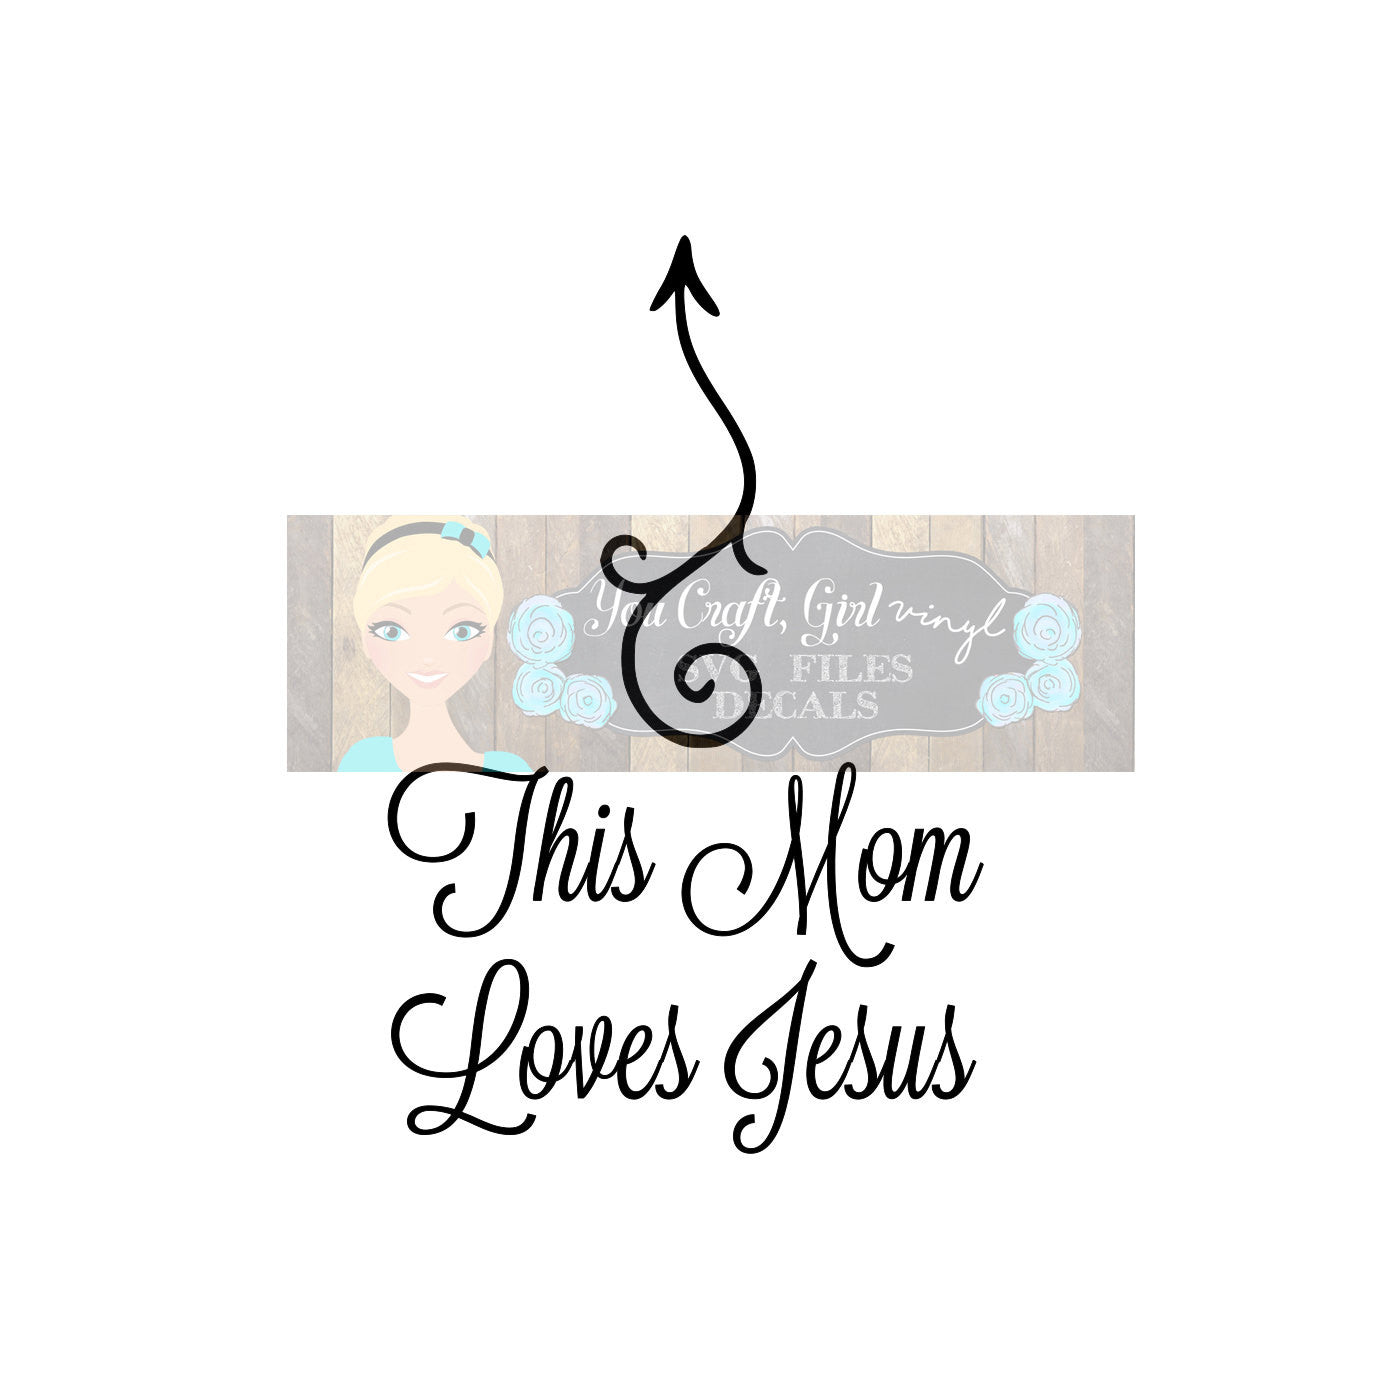 This Mom Loves Jesus Arrow Svg Dxf   Commercial Use SVG   tshirt svg   Christian SVG   Religious decal   Love Jesus   car decal   Htv decal